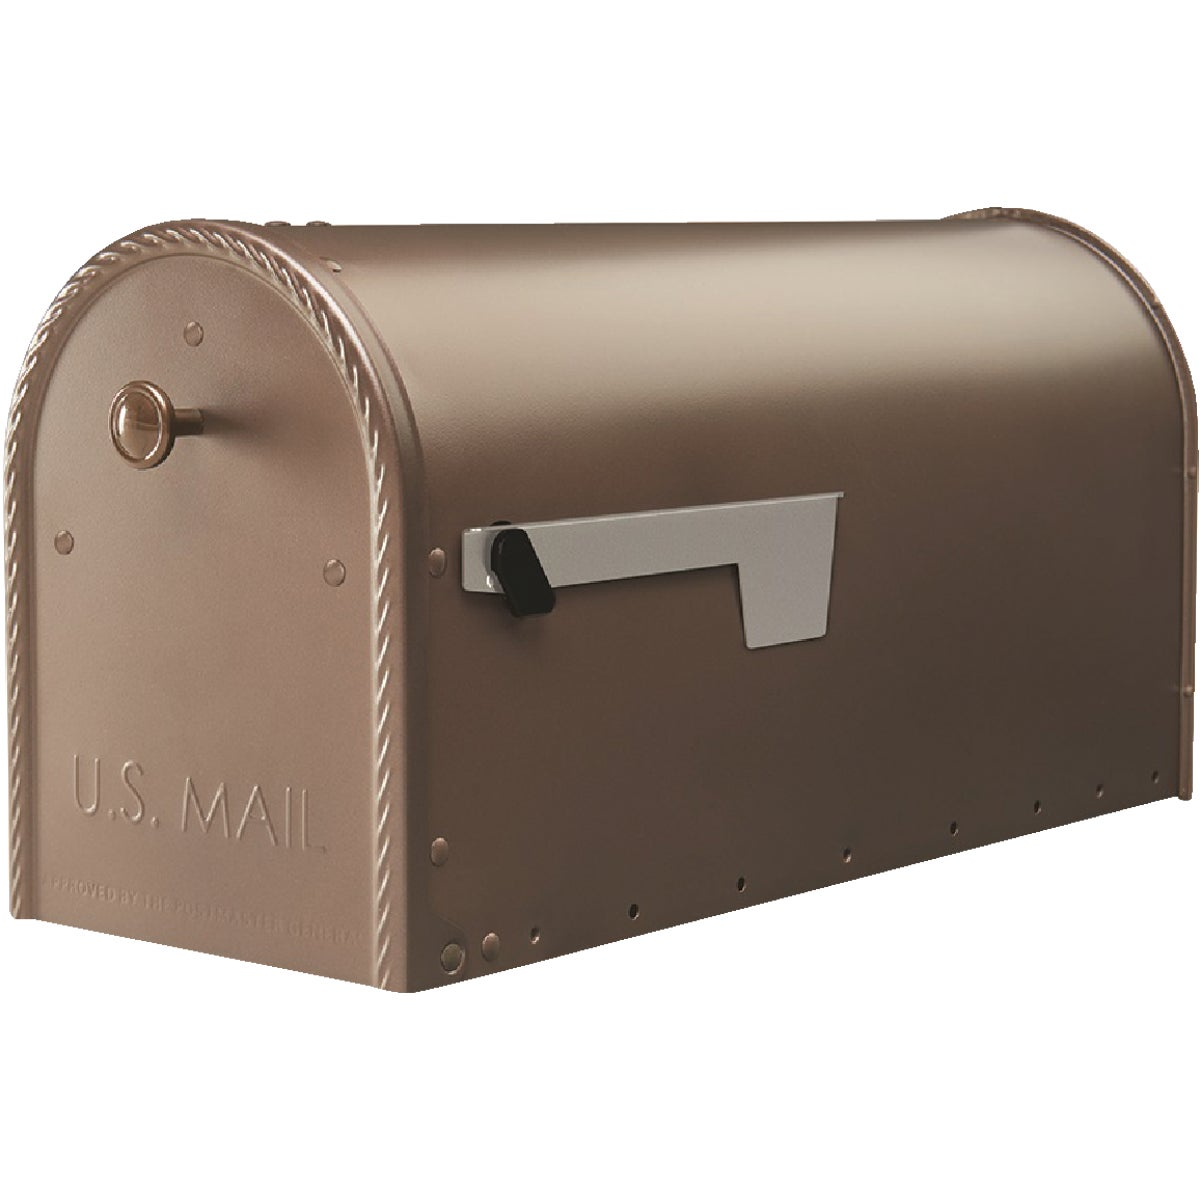 VB T2 WINDMERE MAILBOX